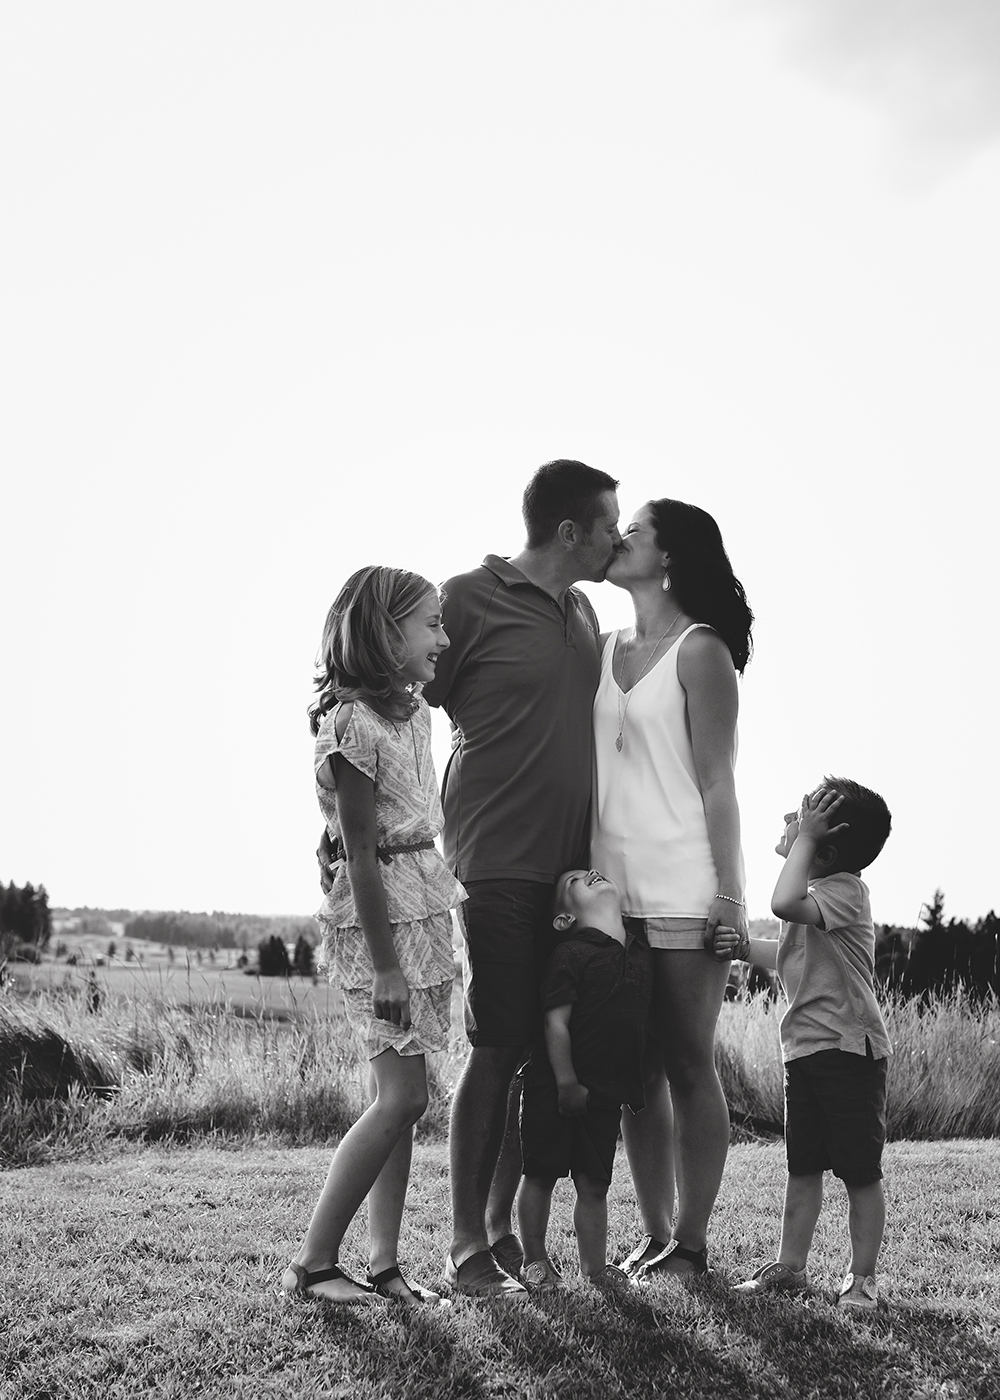 Edmonton Family Photographer_Tebb Family Sneak Peek 2.jpg